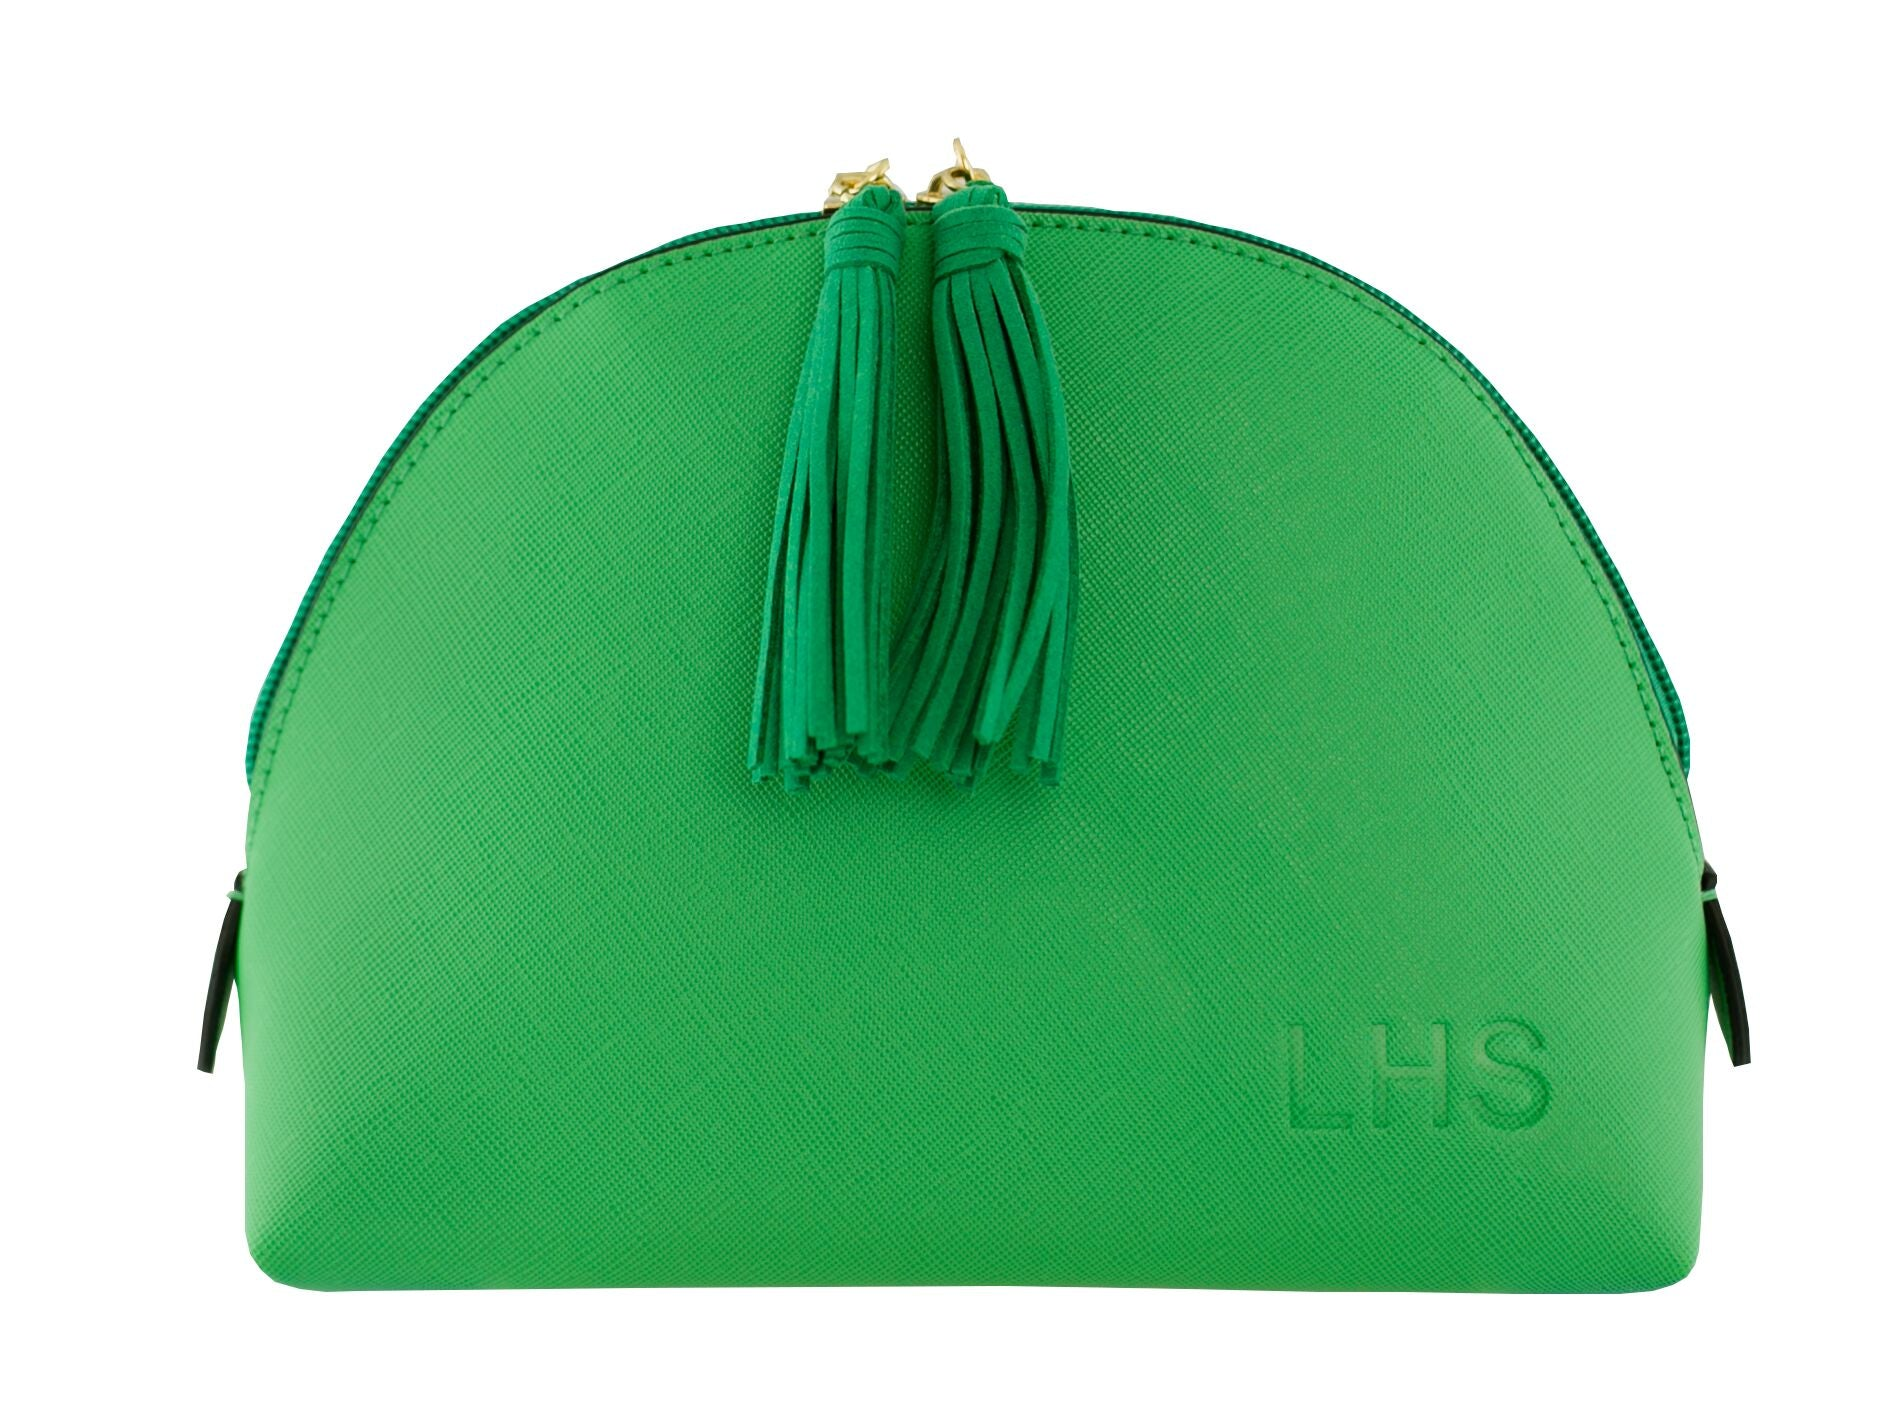 Long Haul Spa Kit - Spring Green Tassel Bag